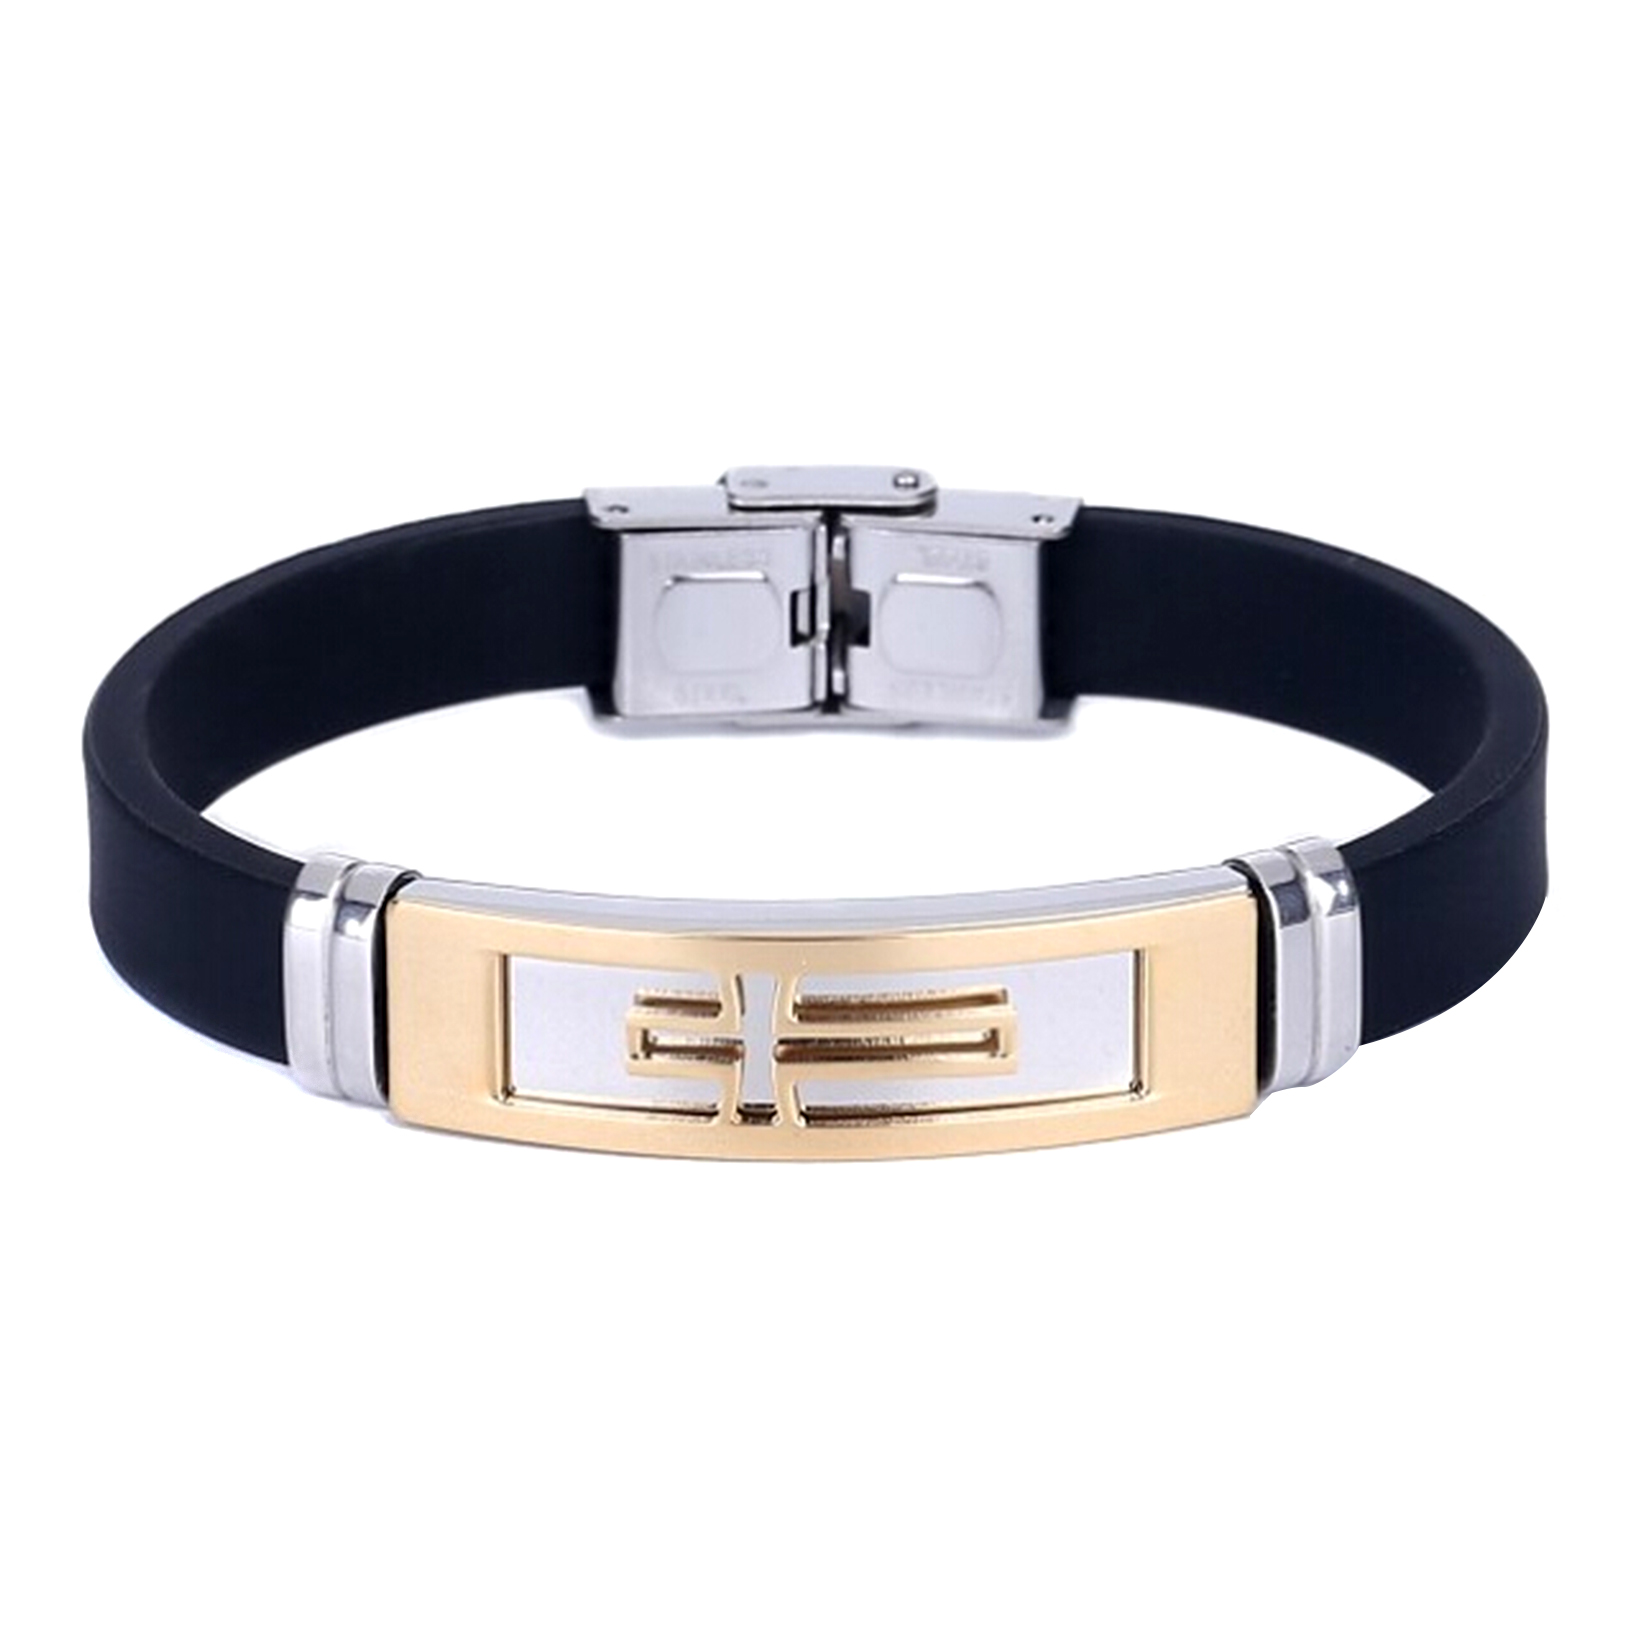 herren schmuck armband silikon manschetten armband kreuz edelstahl armband ebay. Black Bedroom Furniture Sets. Home Design Ideas